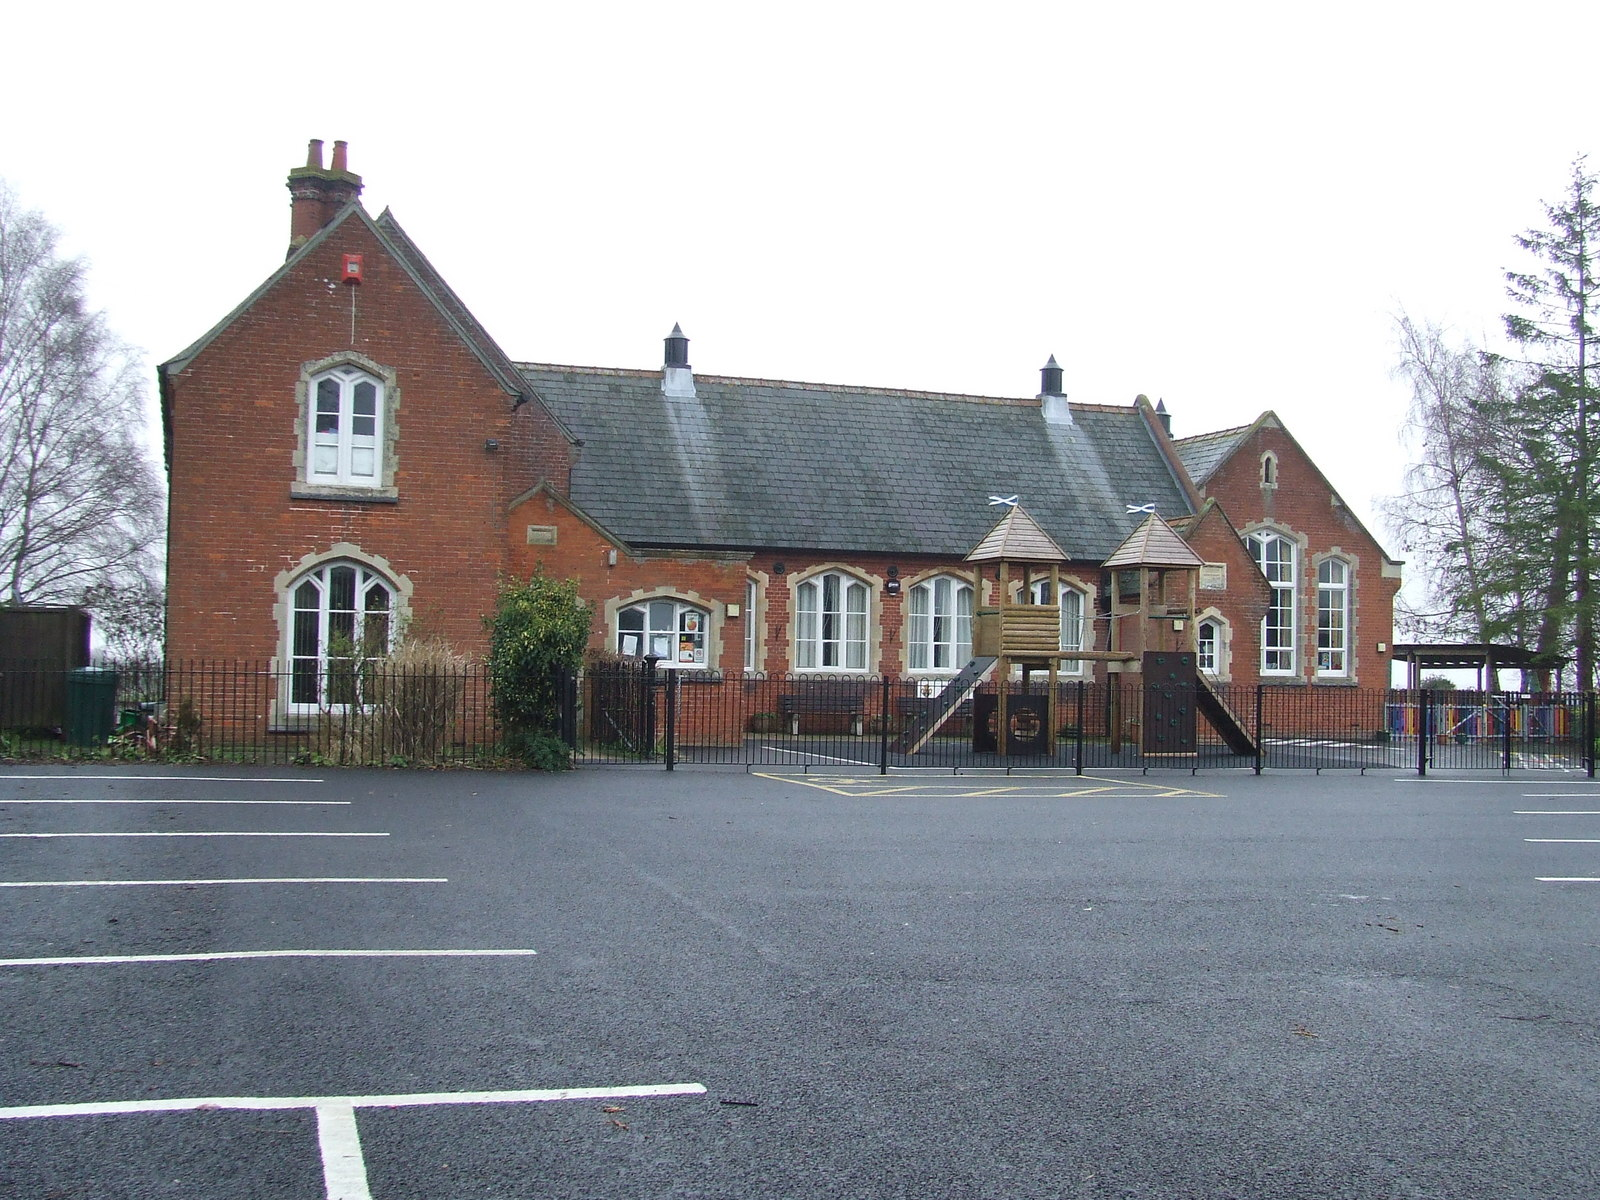 Primary_School_-_geograph.org.uk_-_1700978.jpg?profile=RESIZE_400x